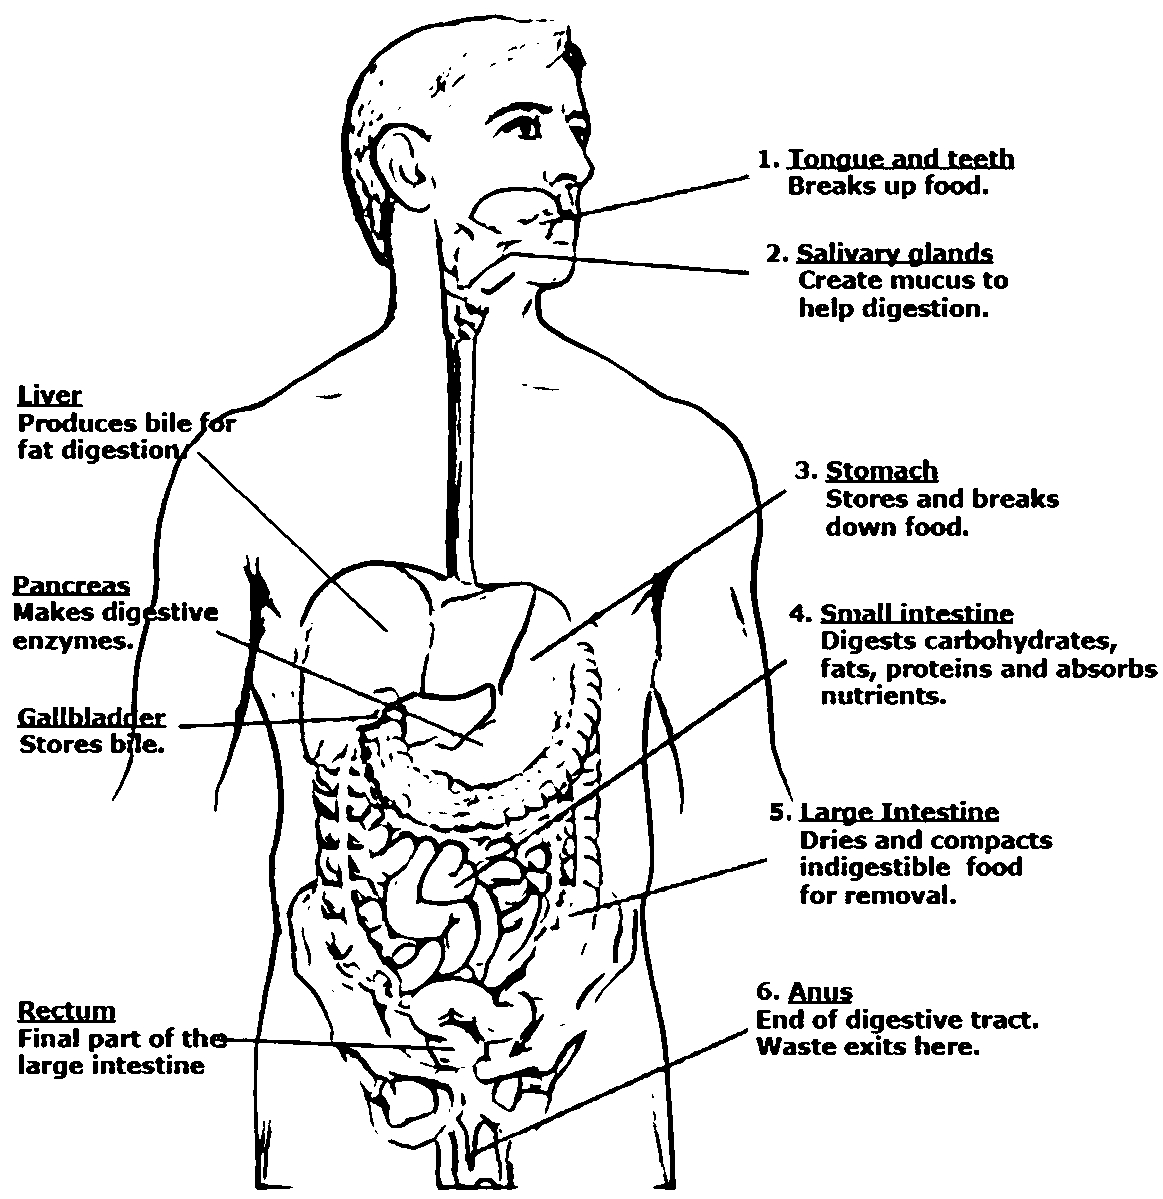 21 Digestive System Coloring Page Collections | FREE COLORING PAGES ...